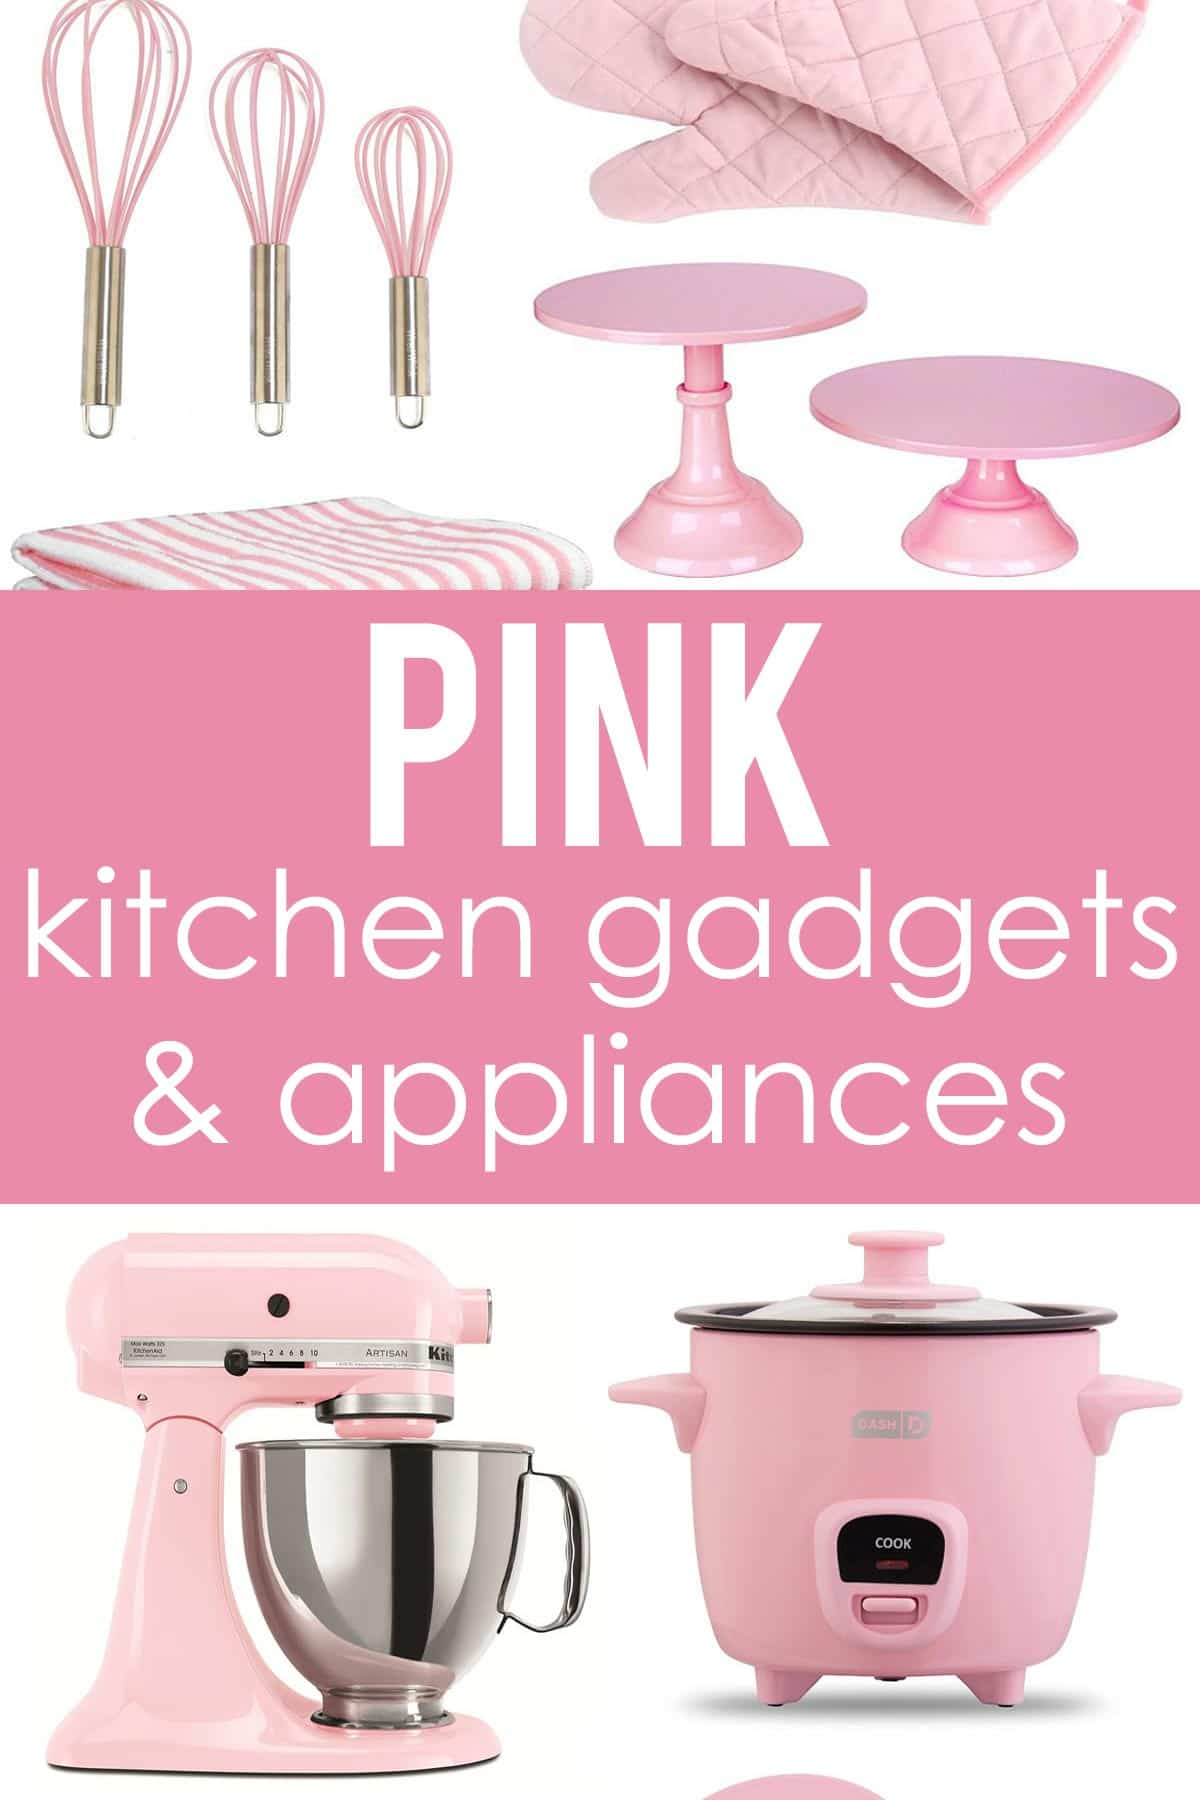 Pink kitchen gadgets and appliances! The perfect pink pops of color for a kitchen!